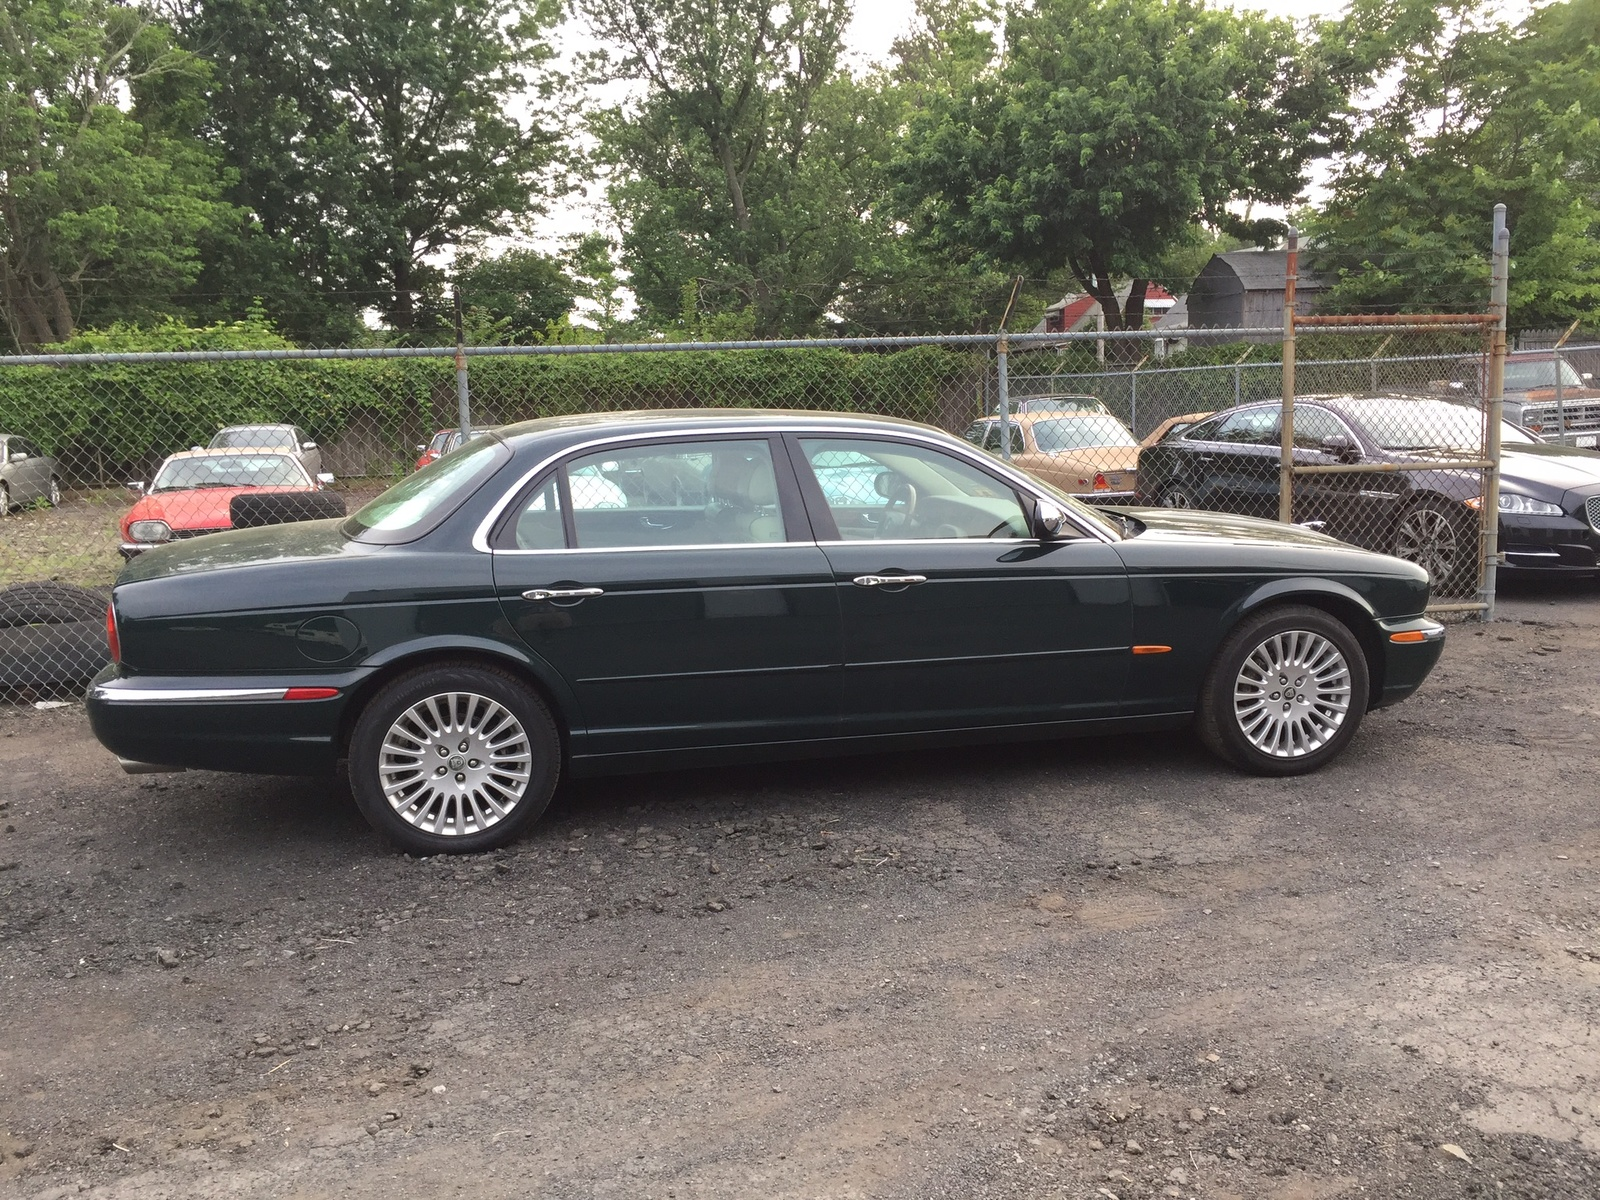 2003 Jaguar Xj8 Valuation 2005 Problems Does Imv Take Into Account Reported Mechanical Issues Or Just Accidents 1600x1200